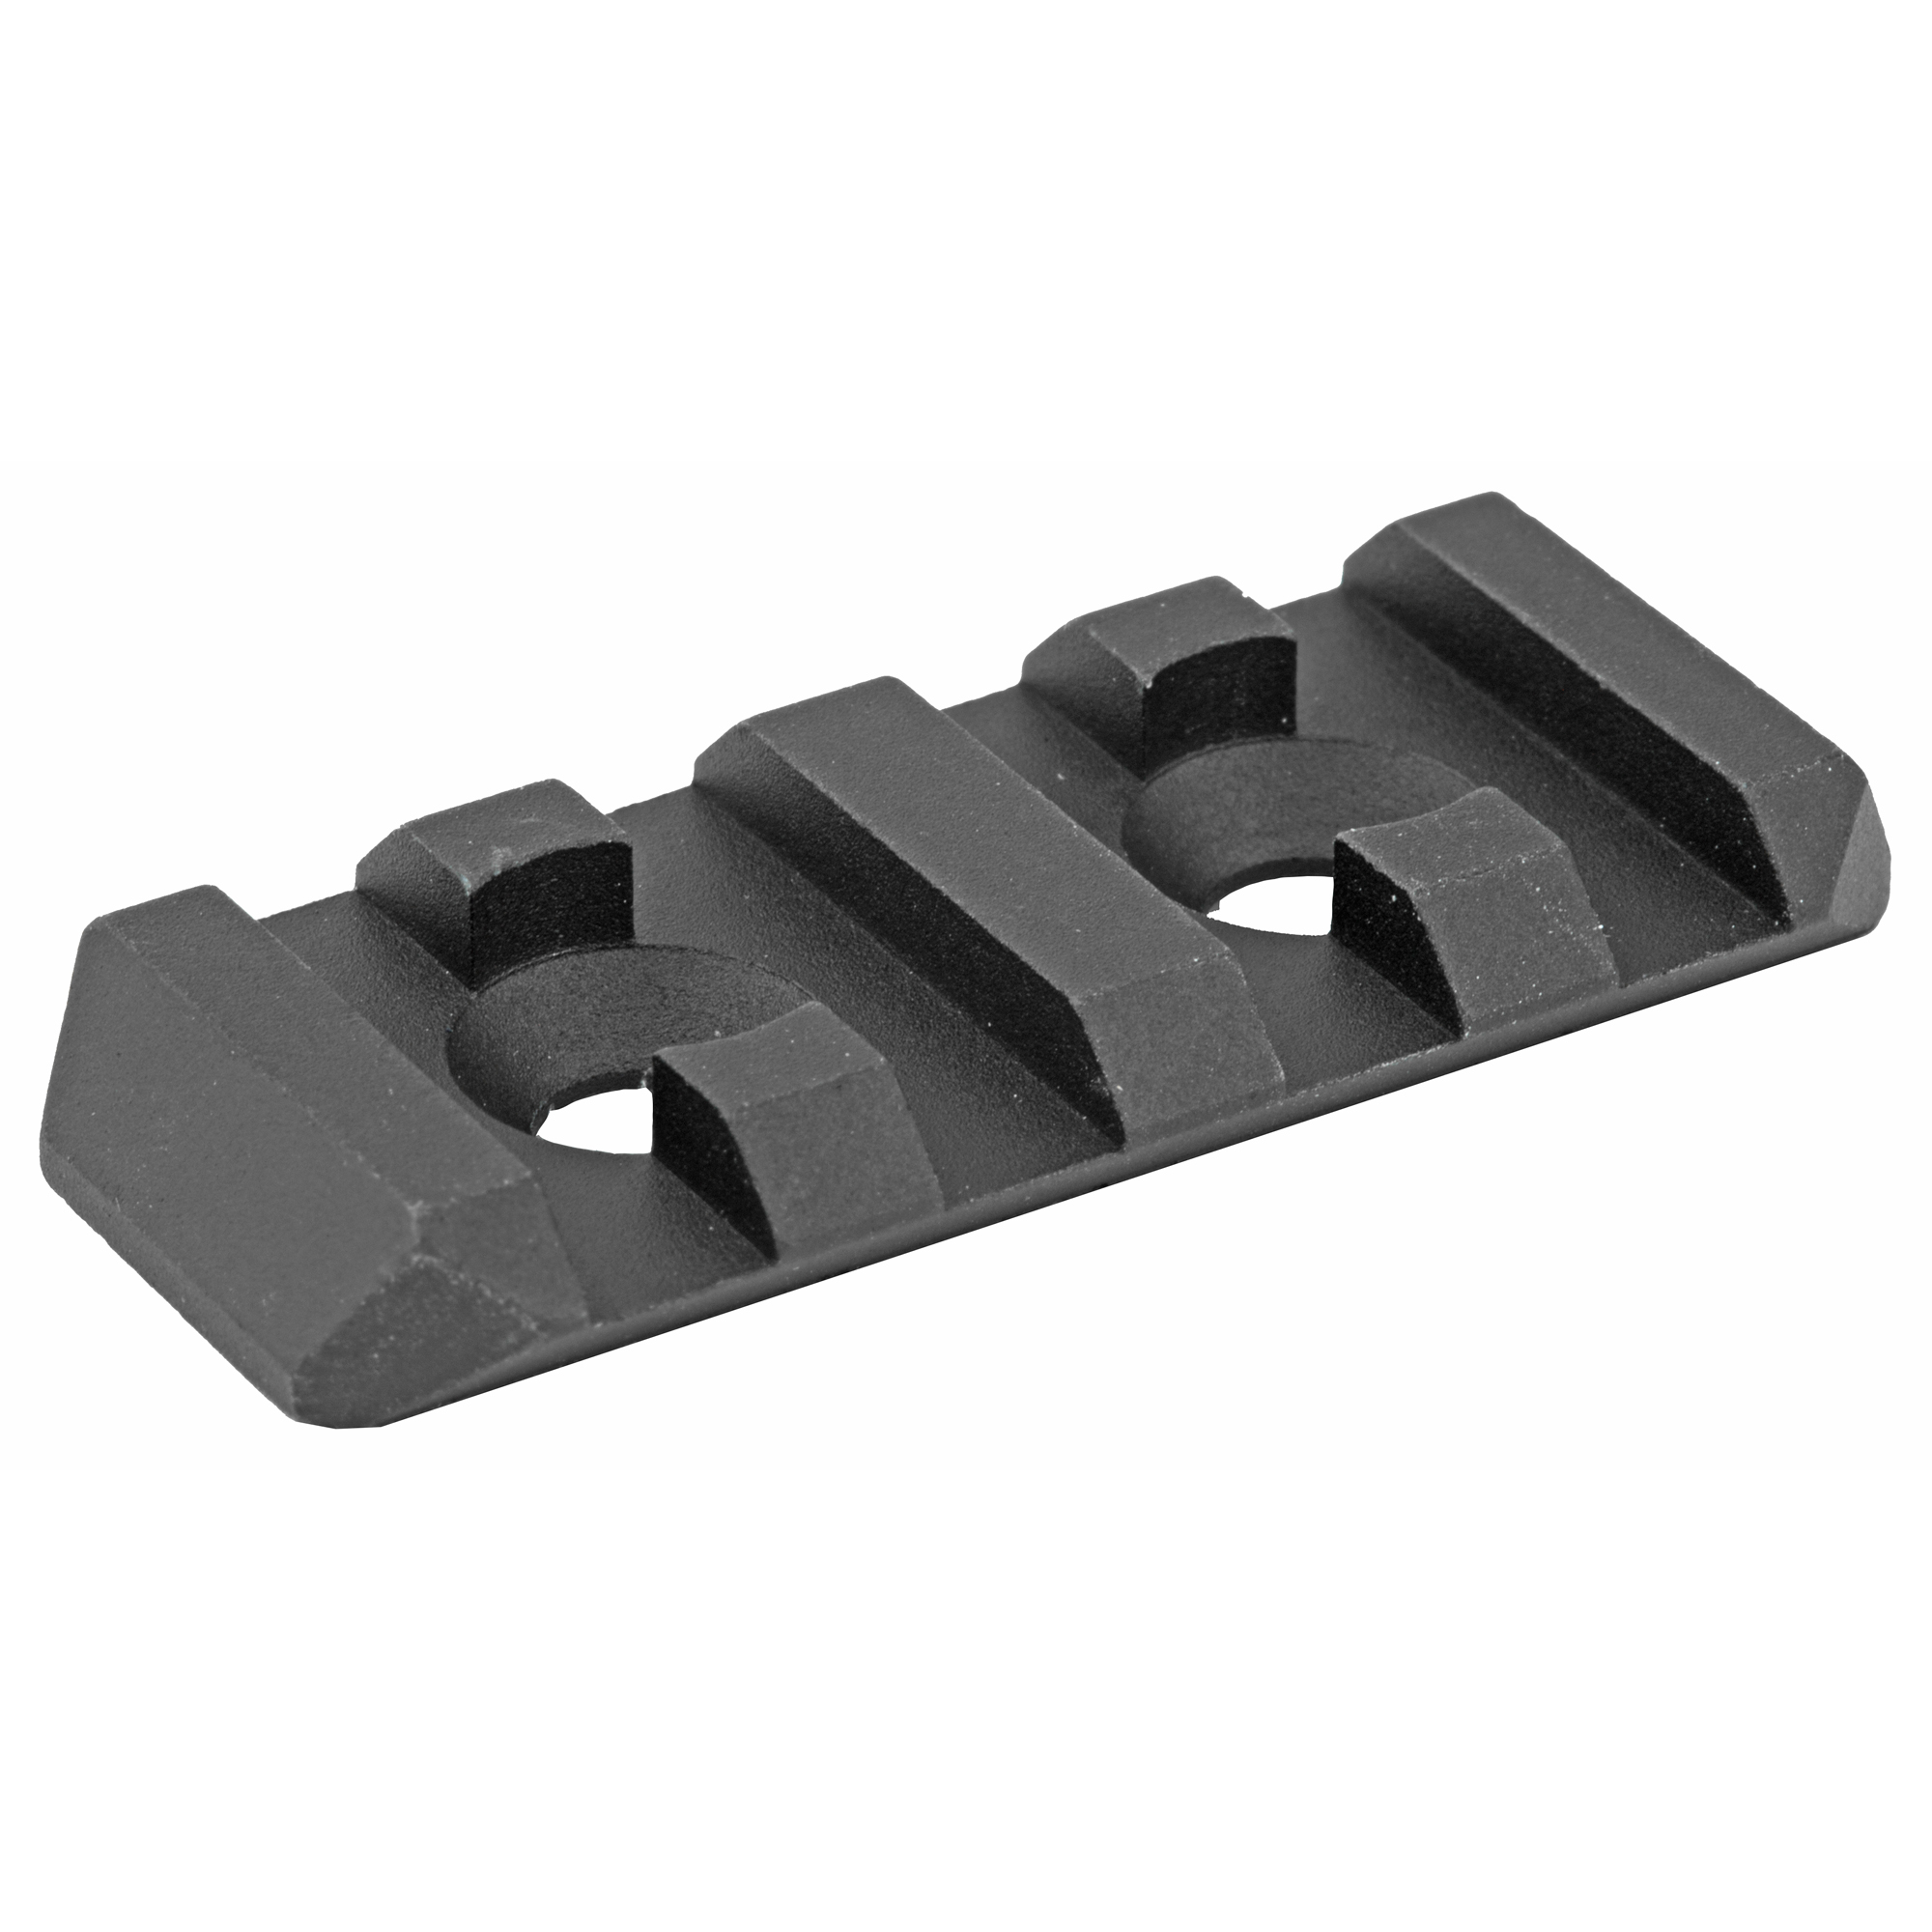 This Tread MLOK sight rail is the factory replacement for the M400 Tread. Comes with screws and nuts.